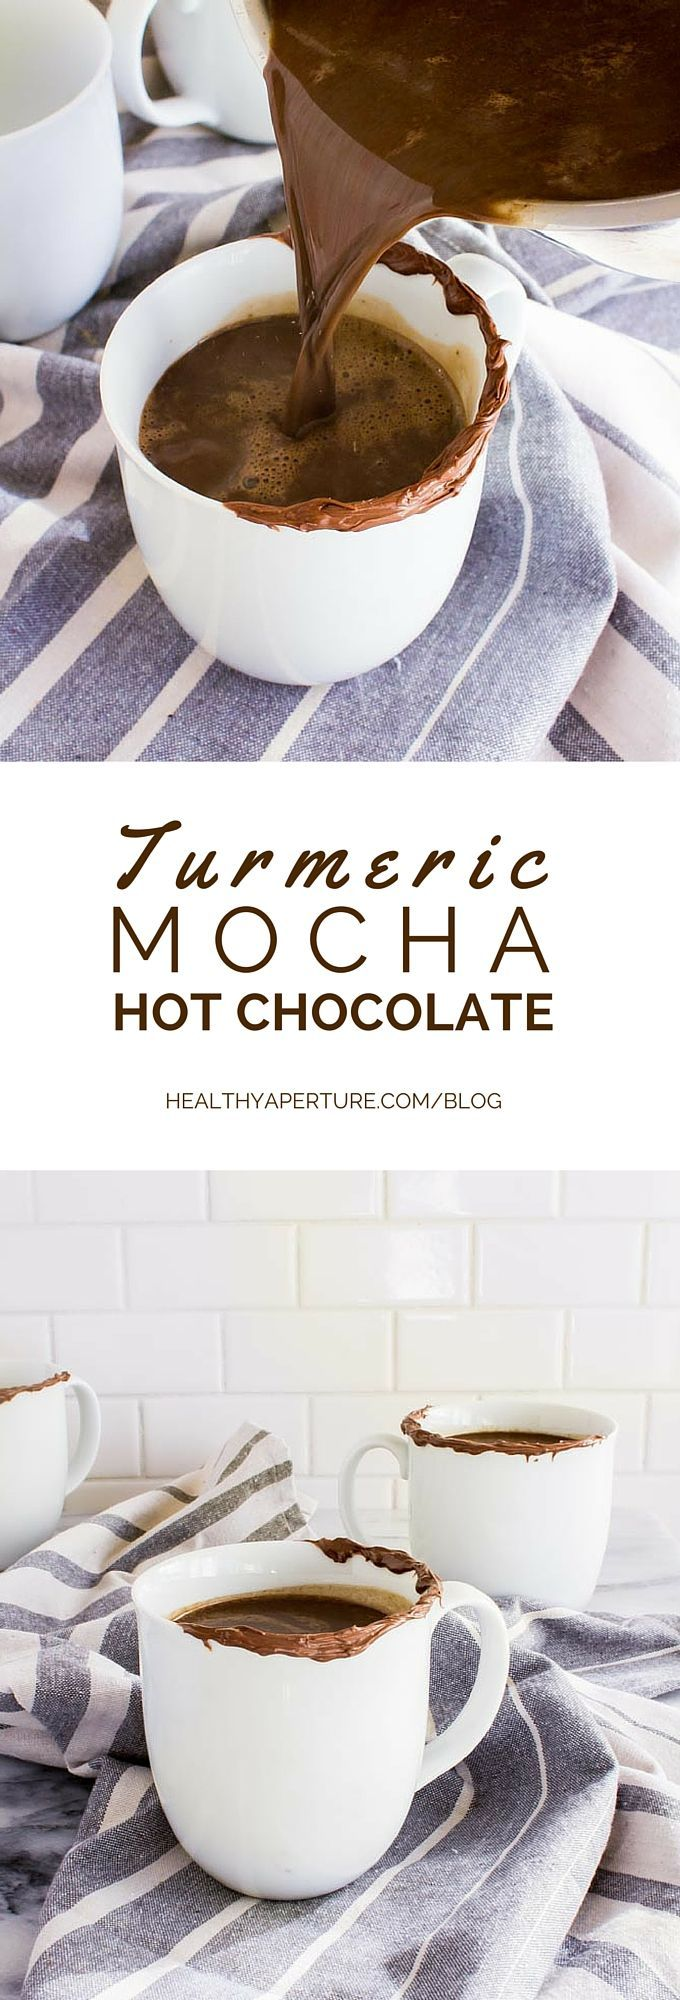 This turmeric spiced hot cocoa is a healthy coffee drink to warm you up this holiday season